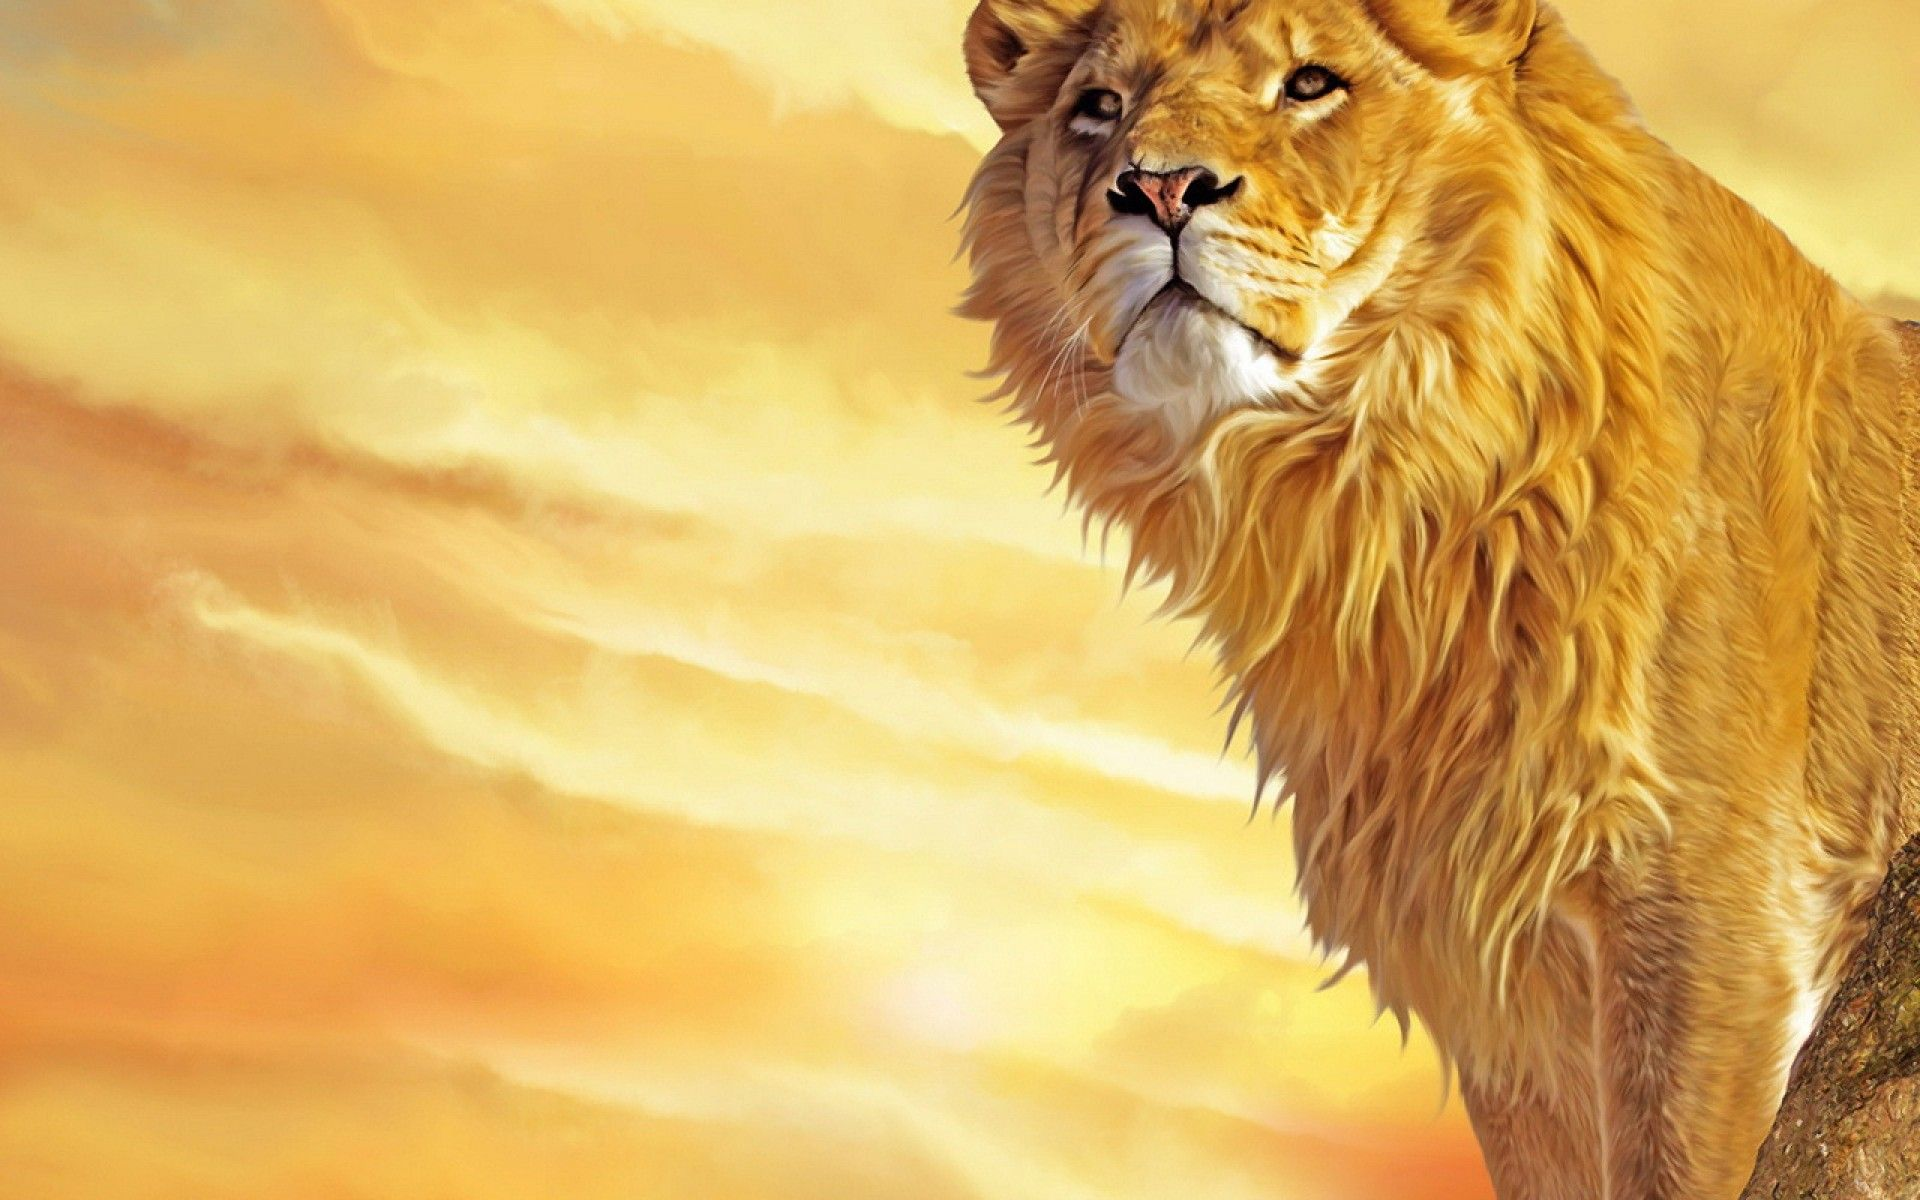 K Ultra HD Lion Wallpapers HD, Desktop Backgrounds  1920x1200